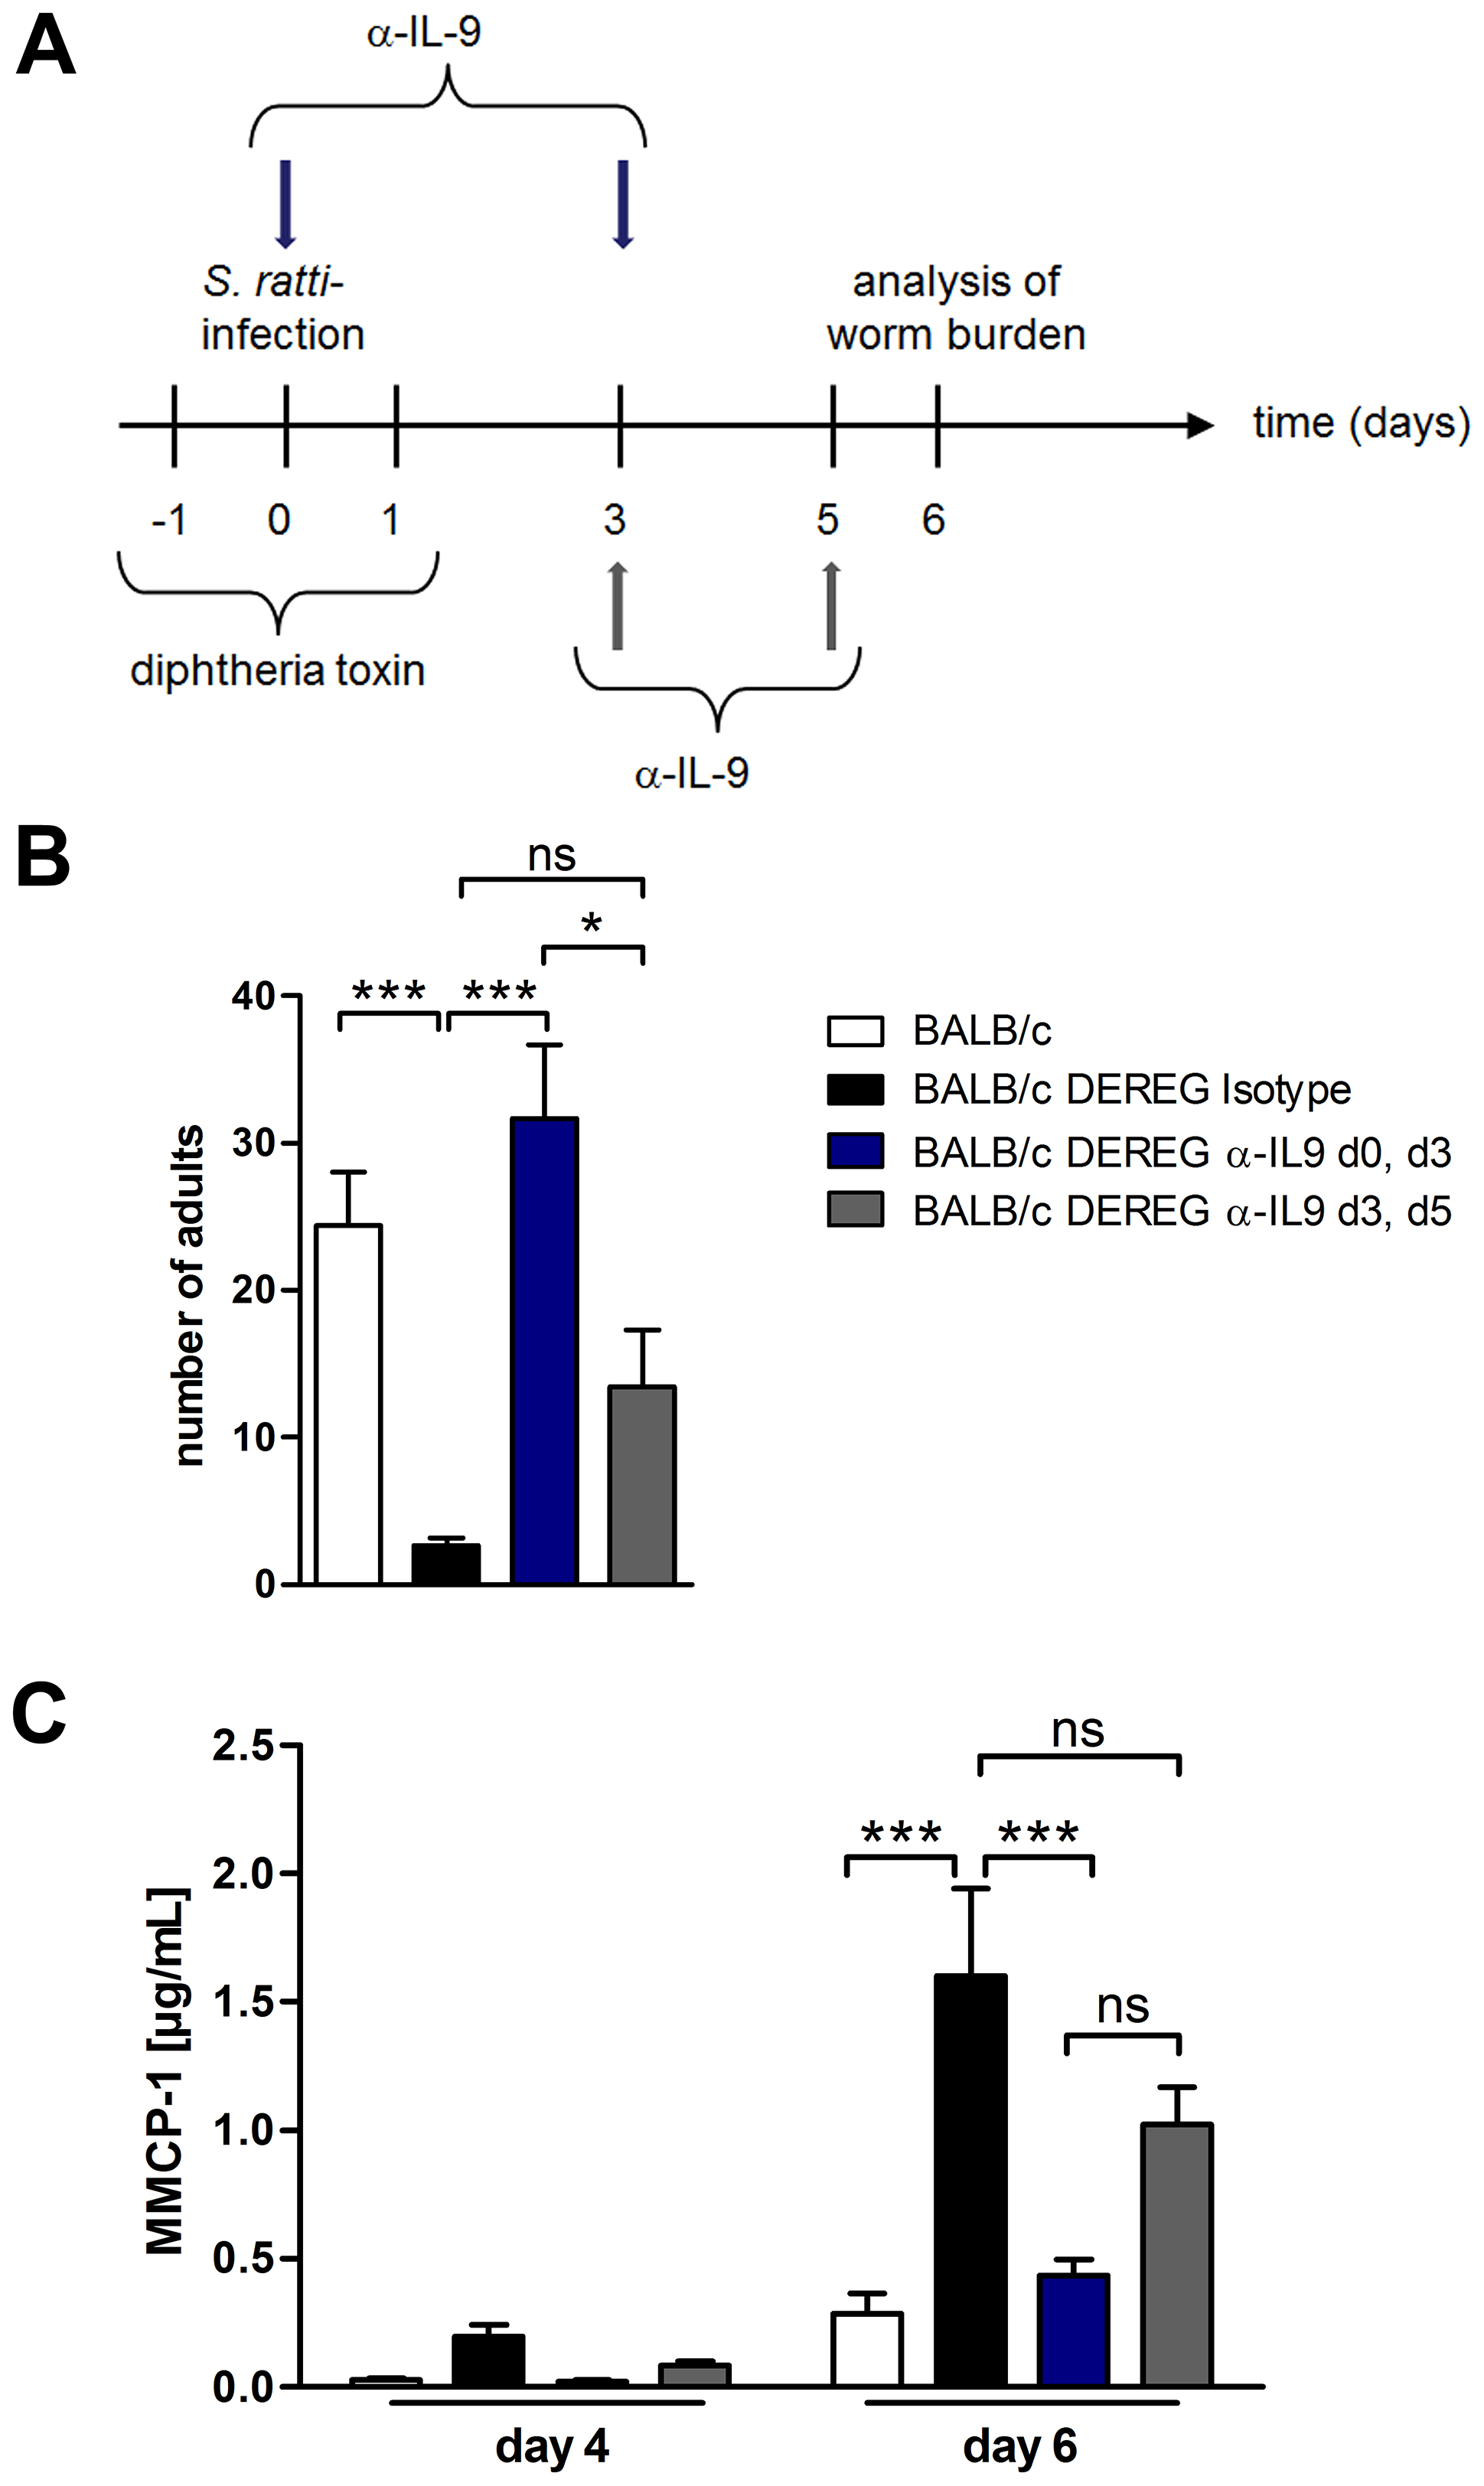 Depletion of IL-9 during <i>S. ratti</i> infection in BALB/c DEREG mice at different time points.